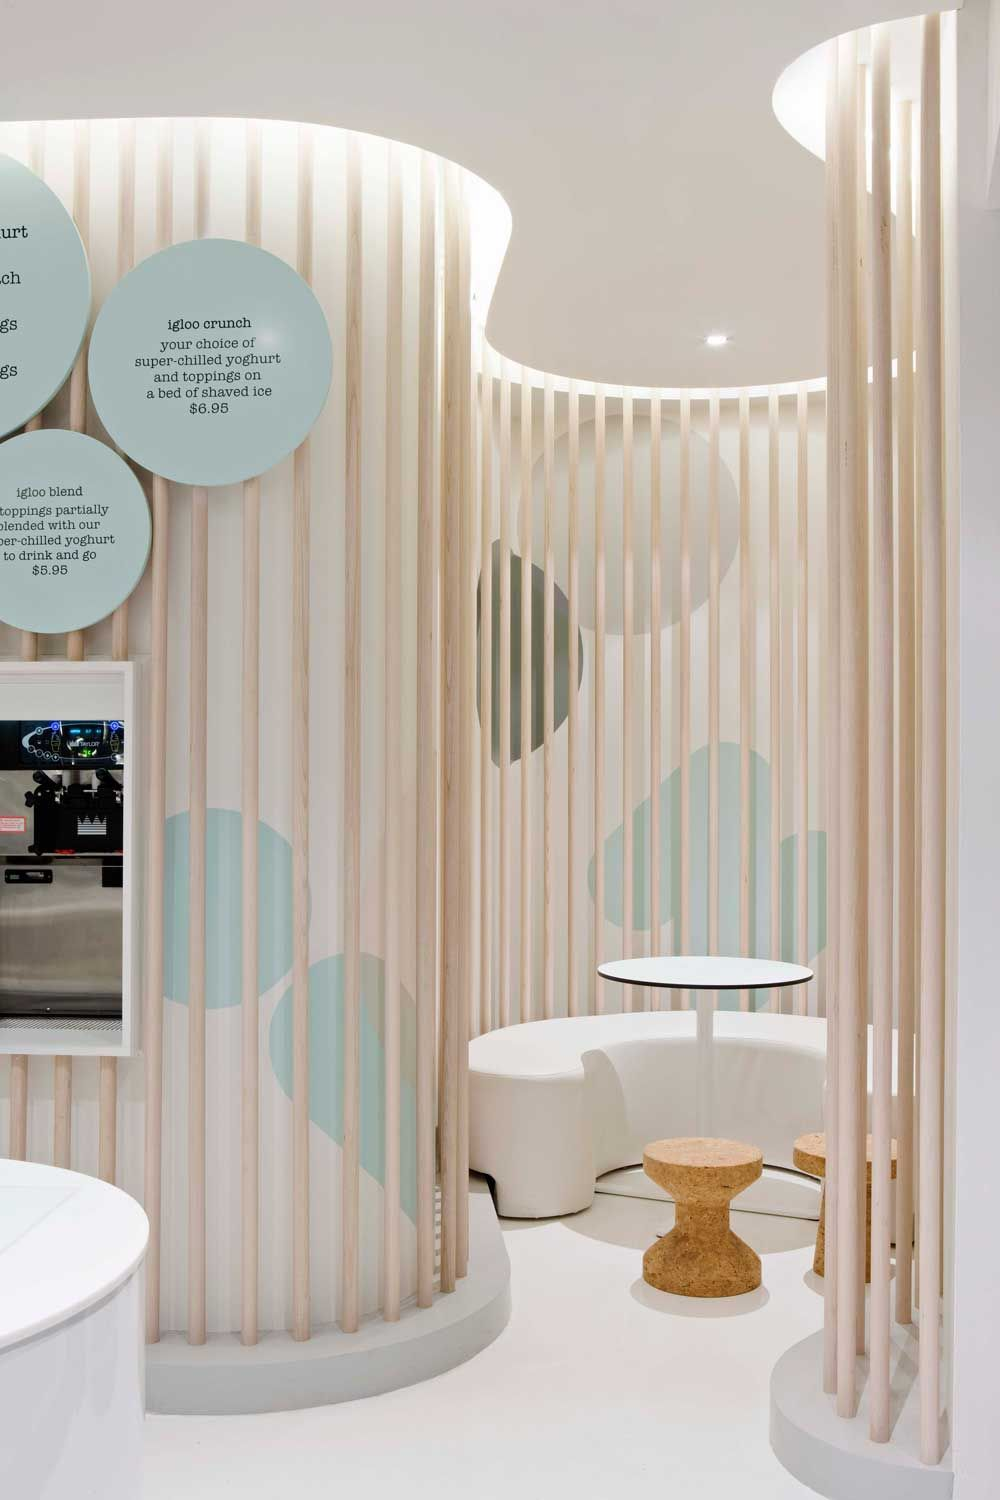 Kids Bathroom Interior Design For Commercial Spaces: Igloo Zoo ในปี 2020